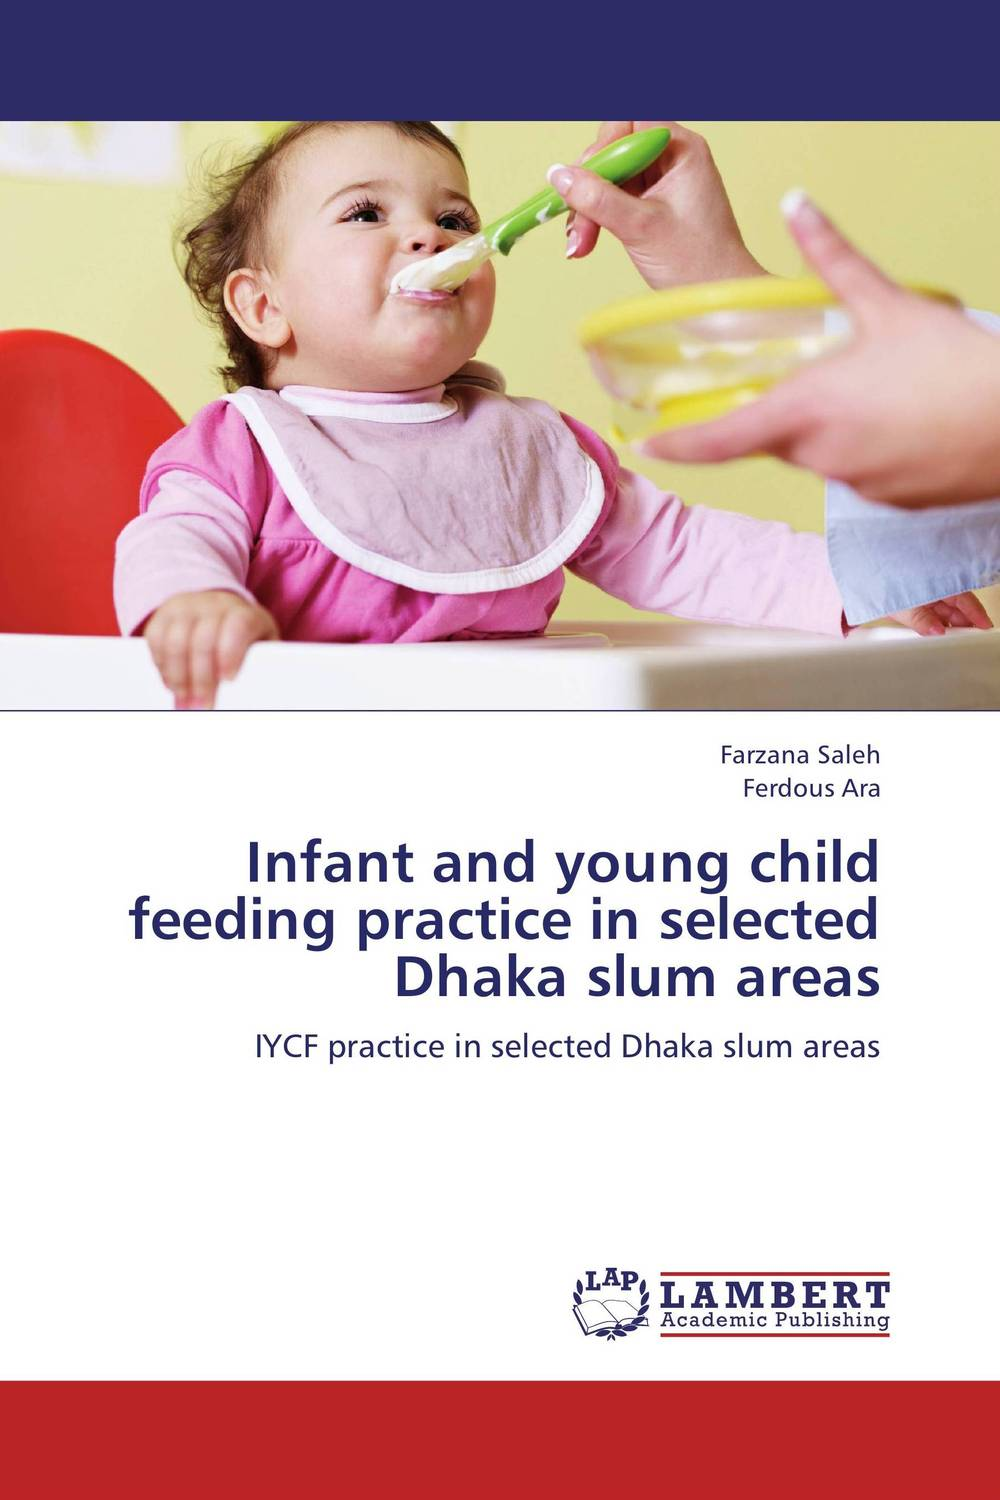 Infant and young child feeding practice in selected Dhaka slum areas 50g канифоль для пайки флюс паста крем пайку сварка смазка для телефона pcb